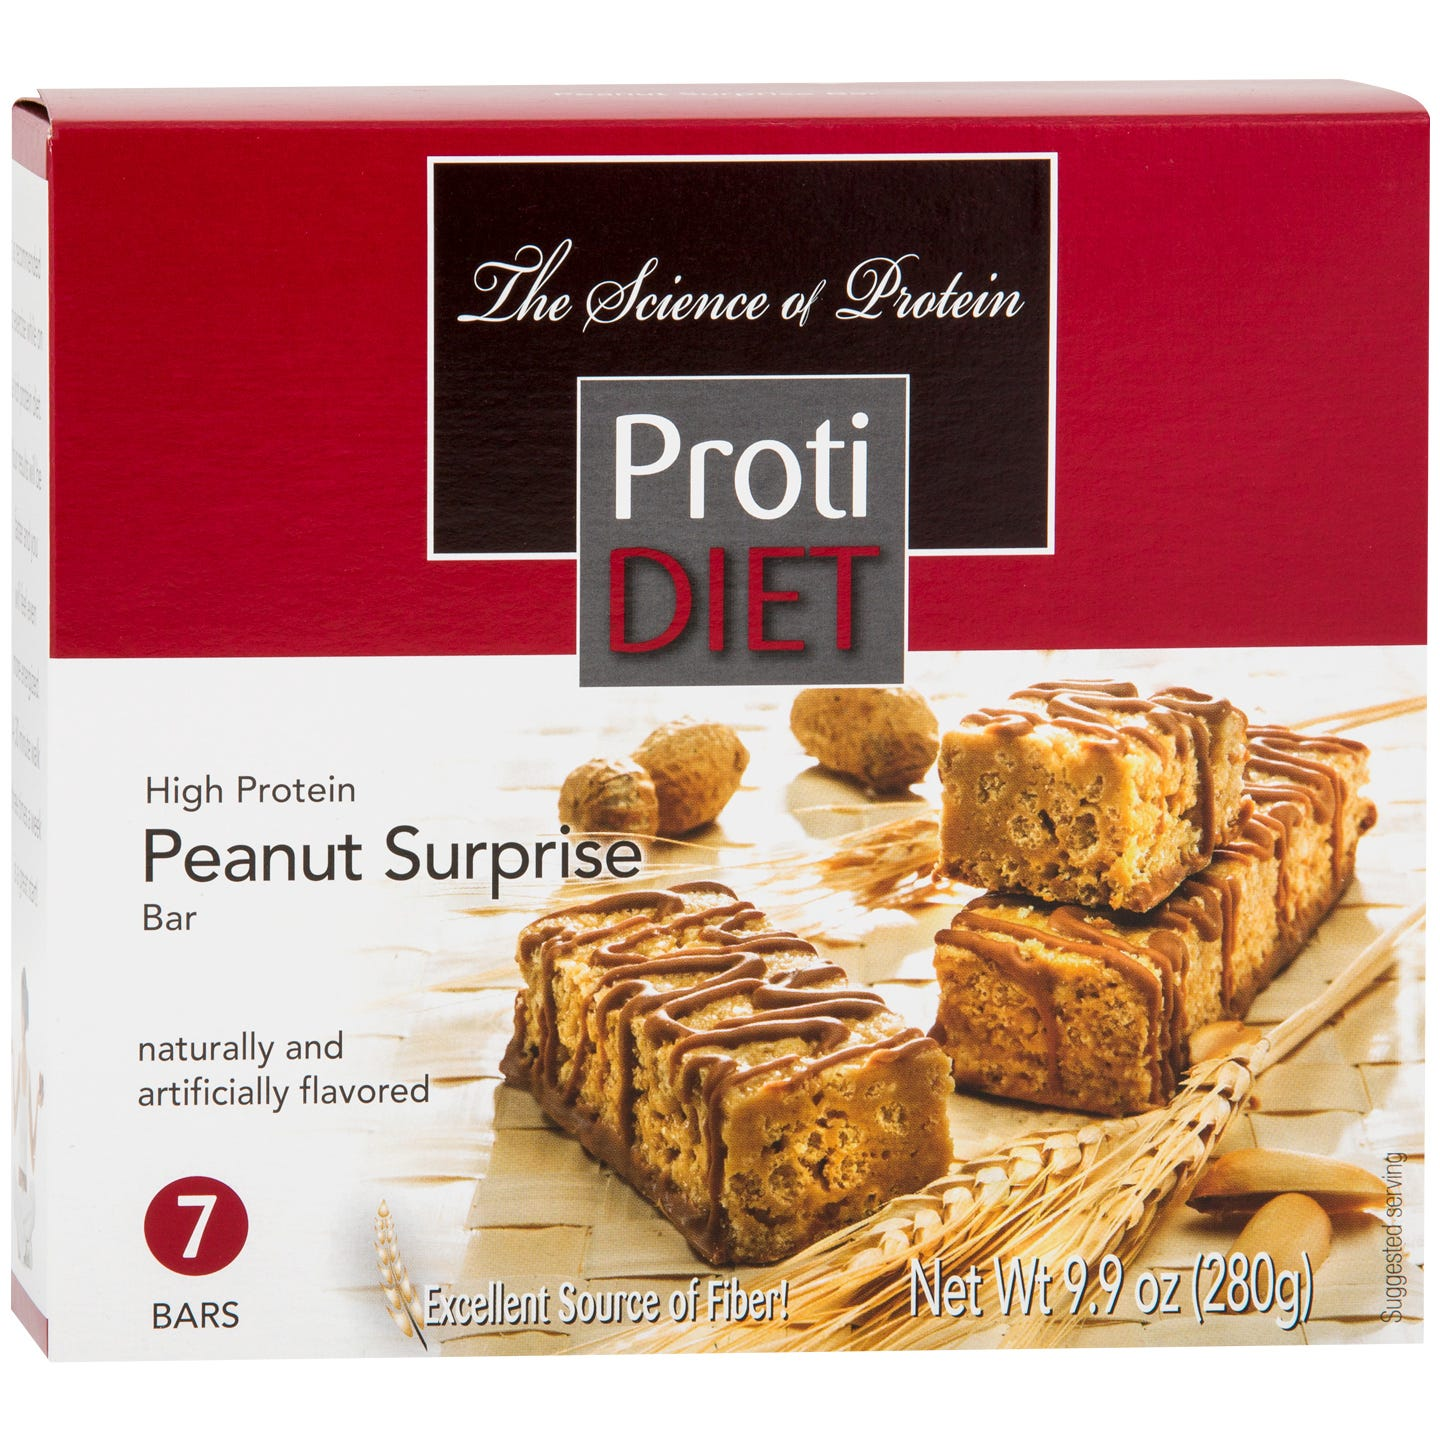 Protein Bars Peanuts Surprise (7 ct) - ProtiDiet - Rapid Diet Weight Loss Products Shop